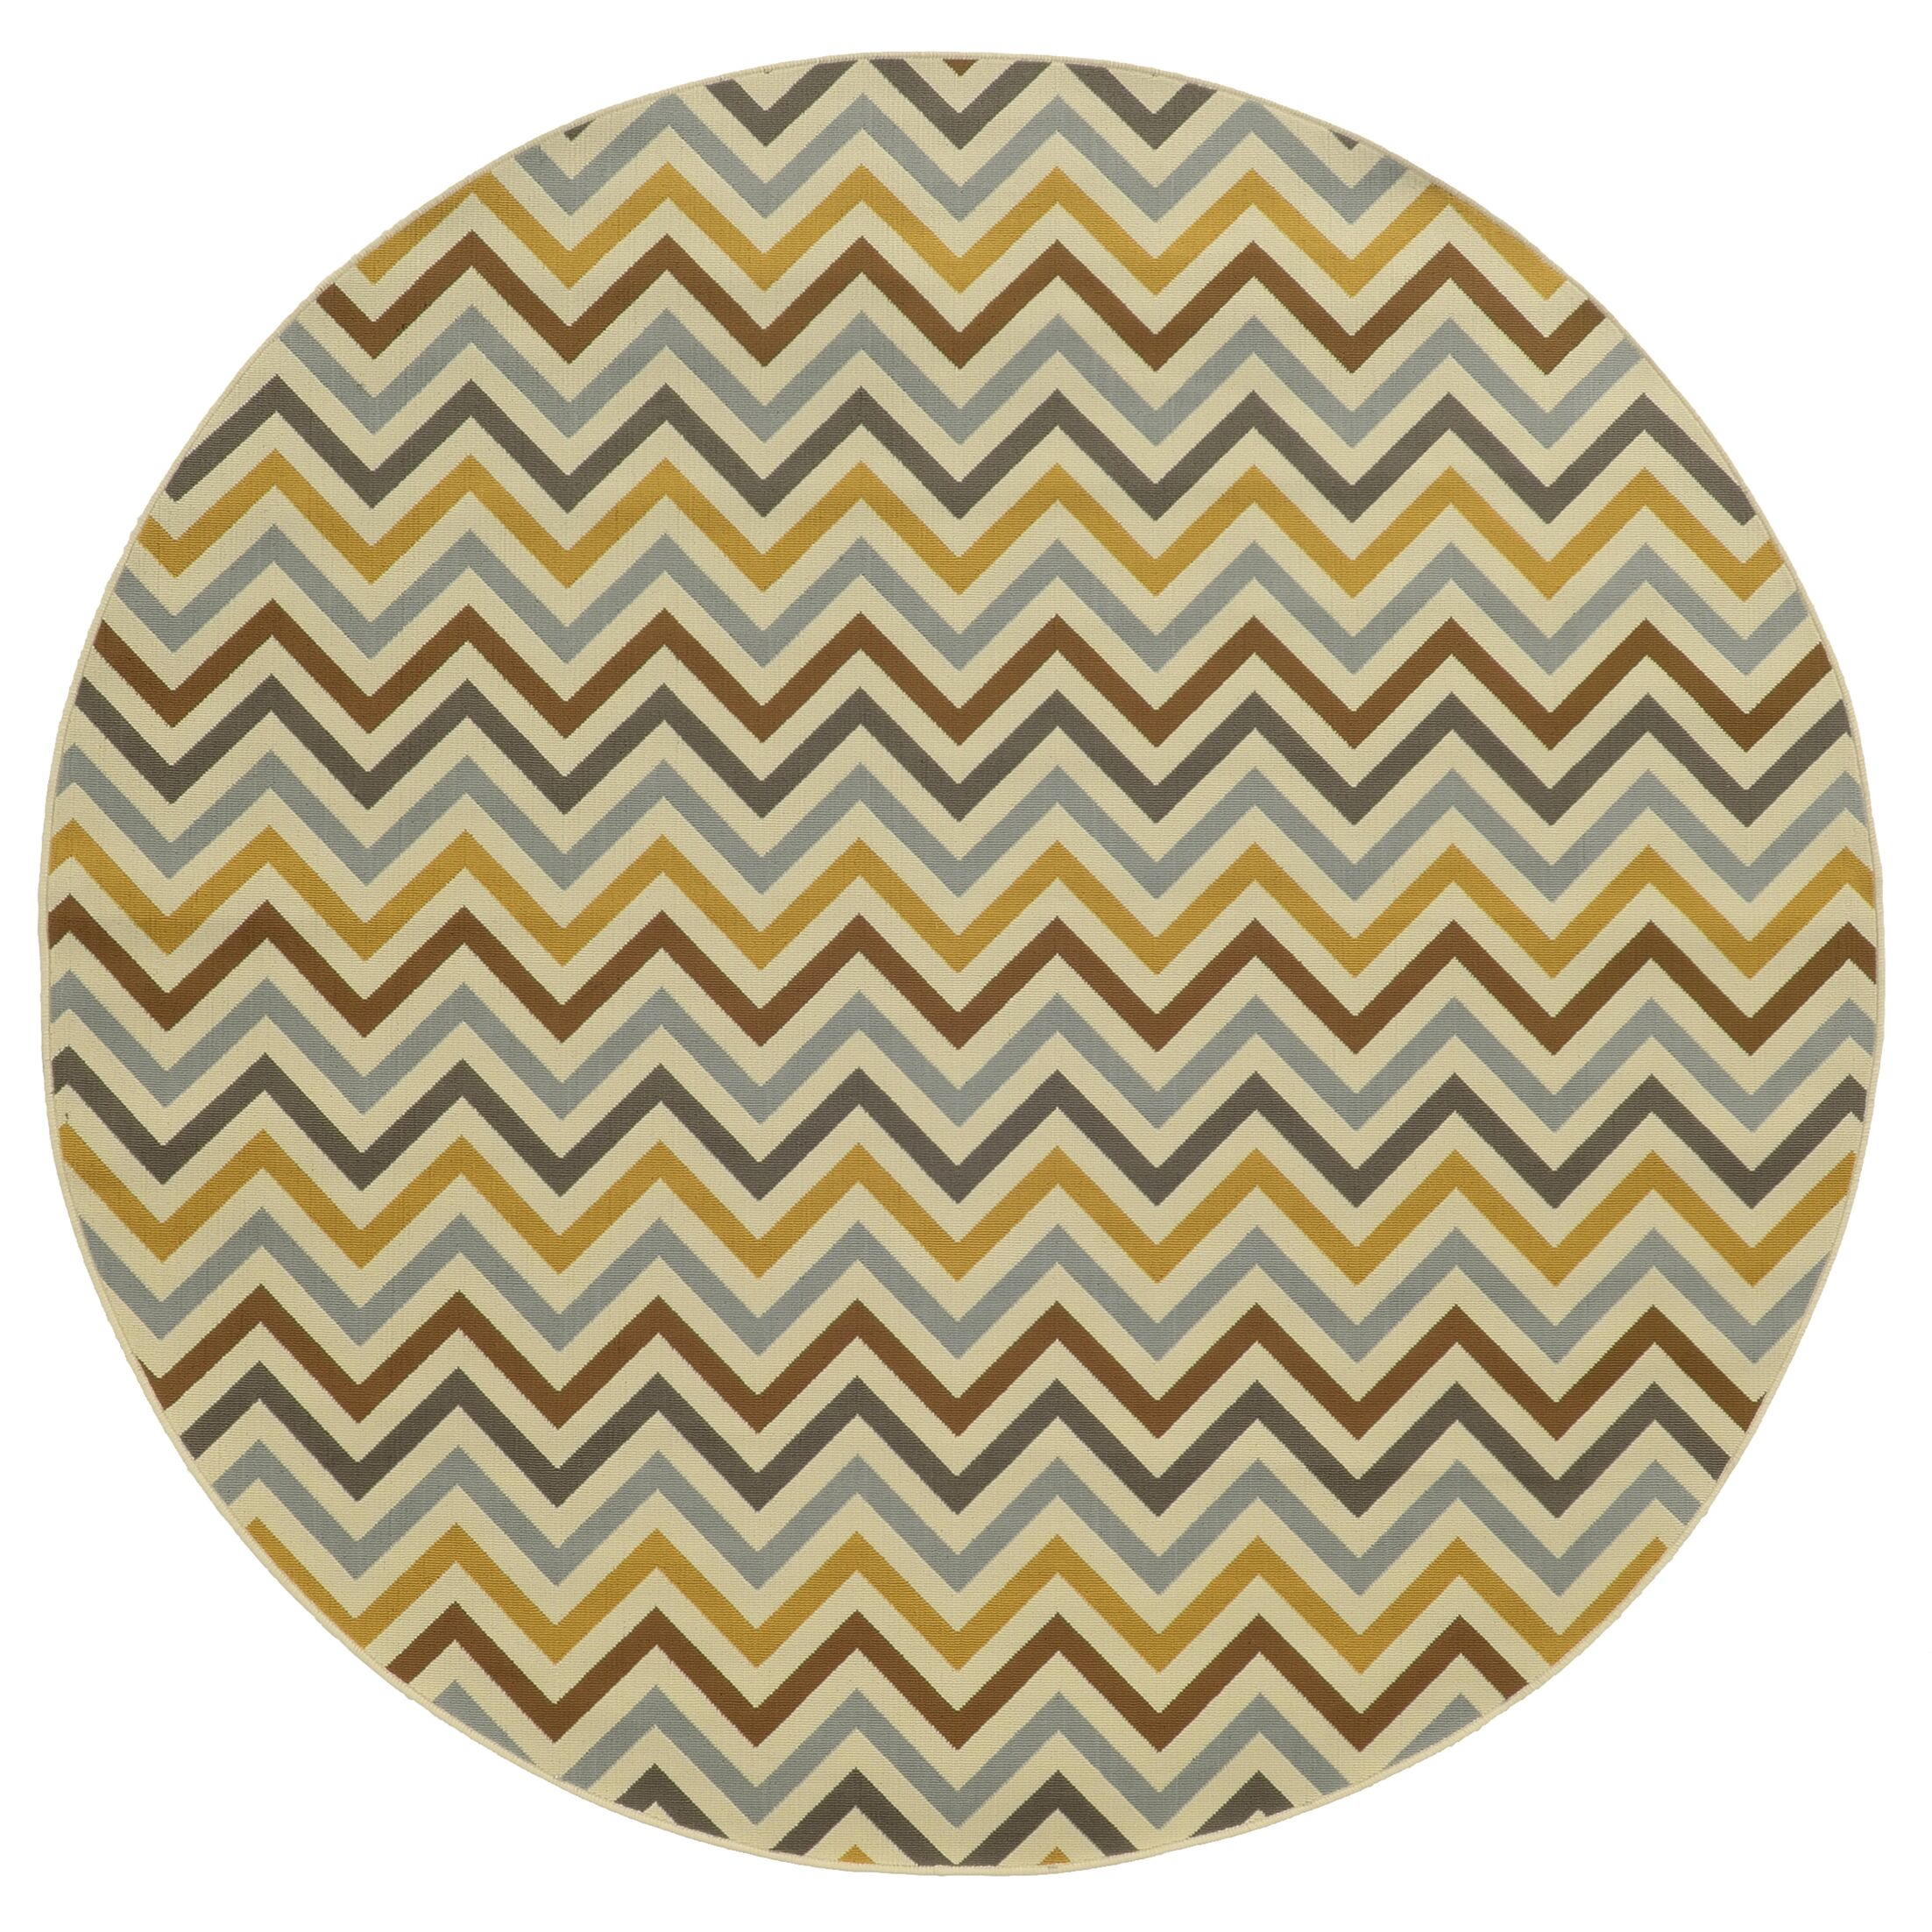 Heath Gray/Gold Indoor/Outdoor Area Rug Rug Size: Round 7'10